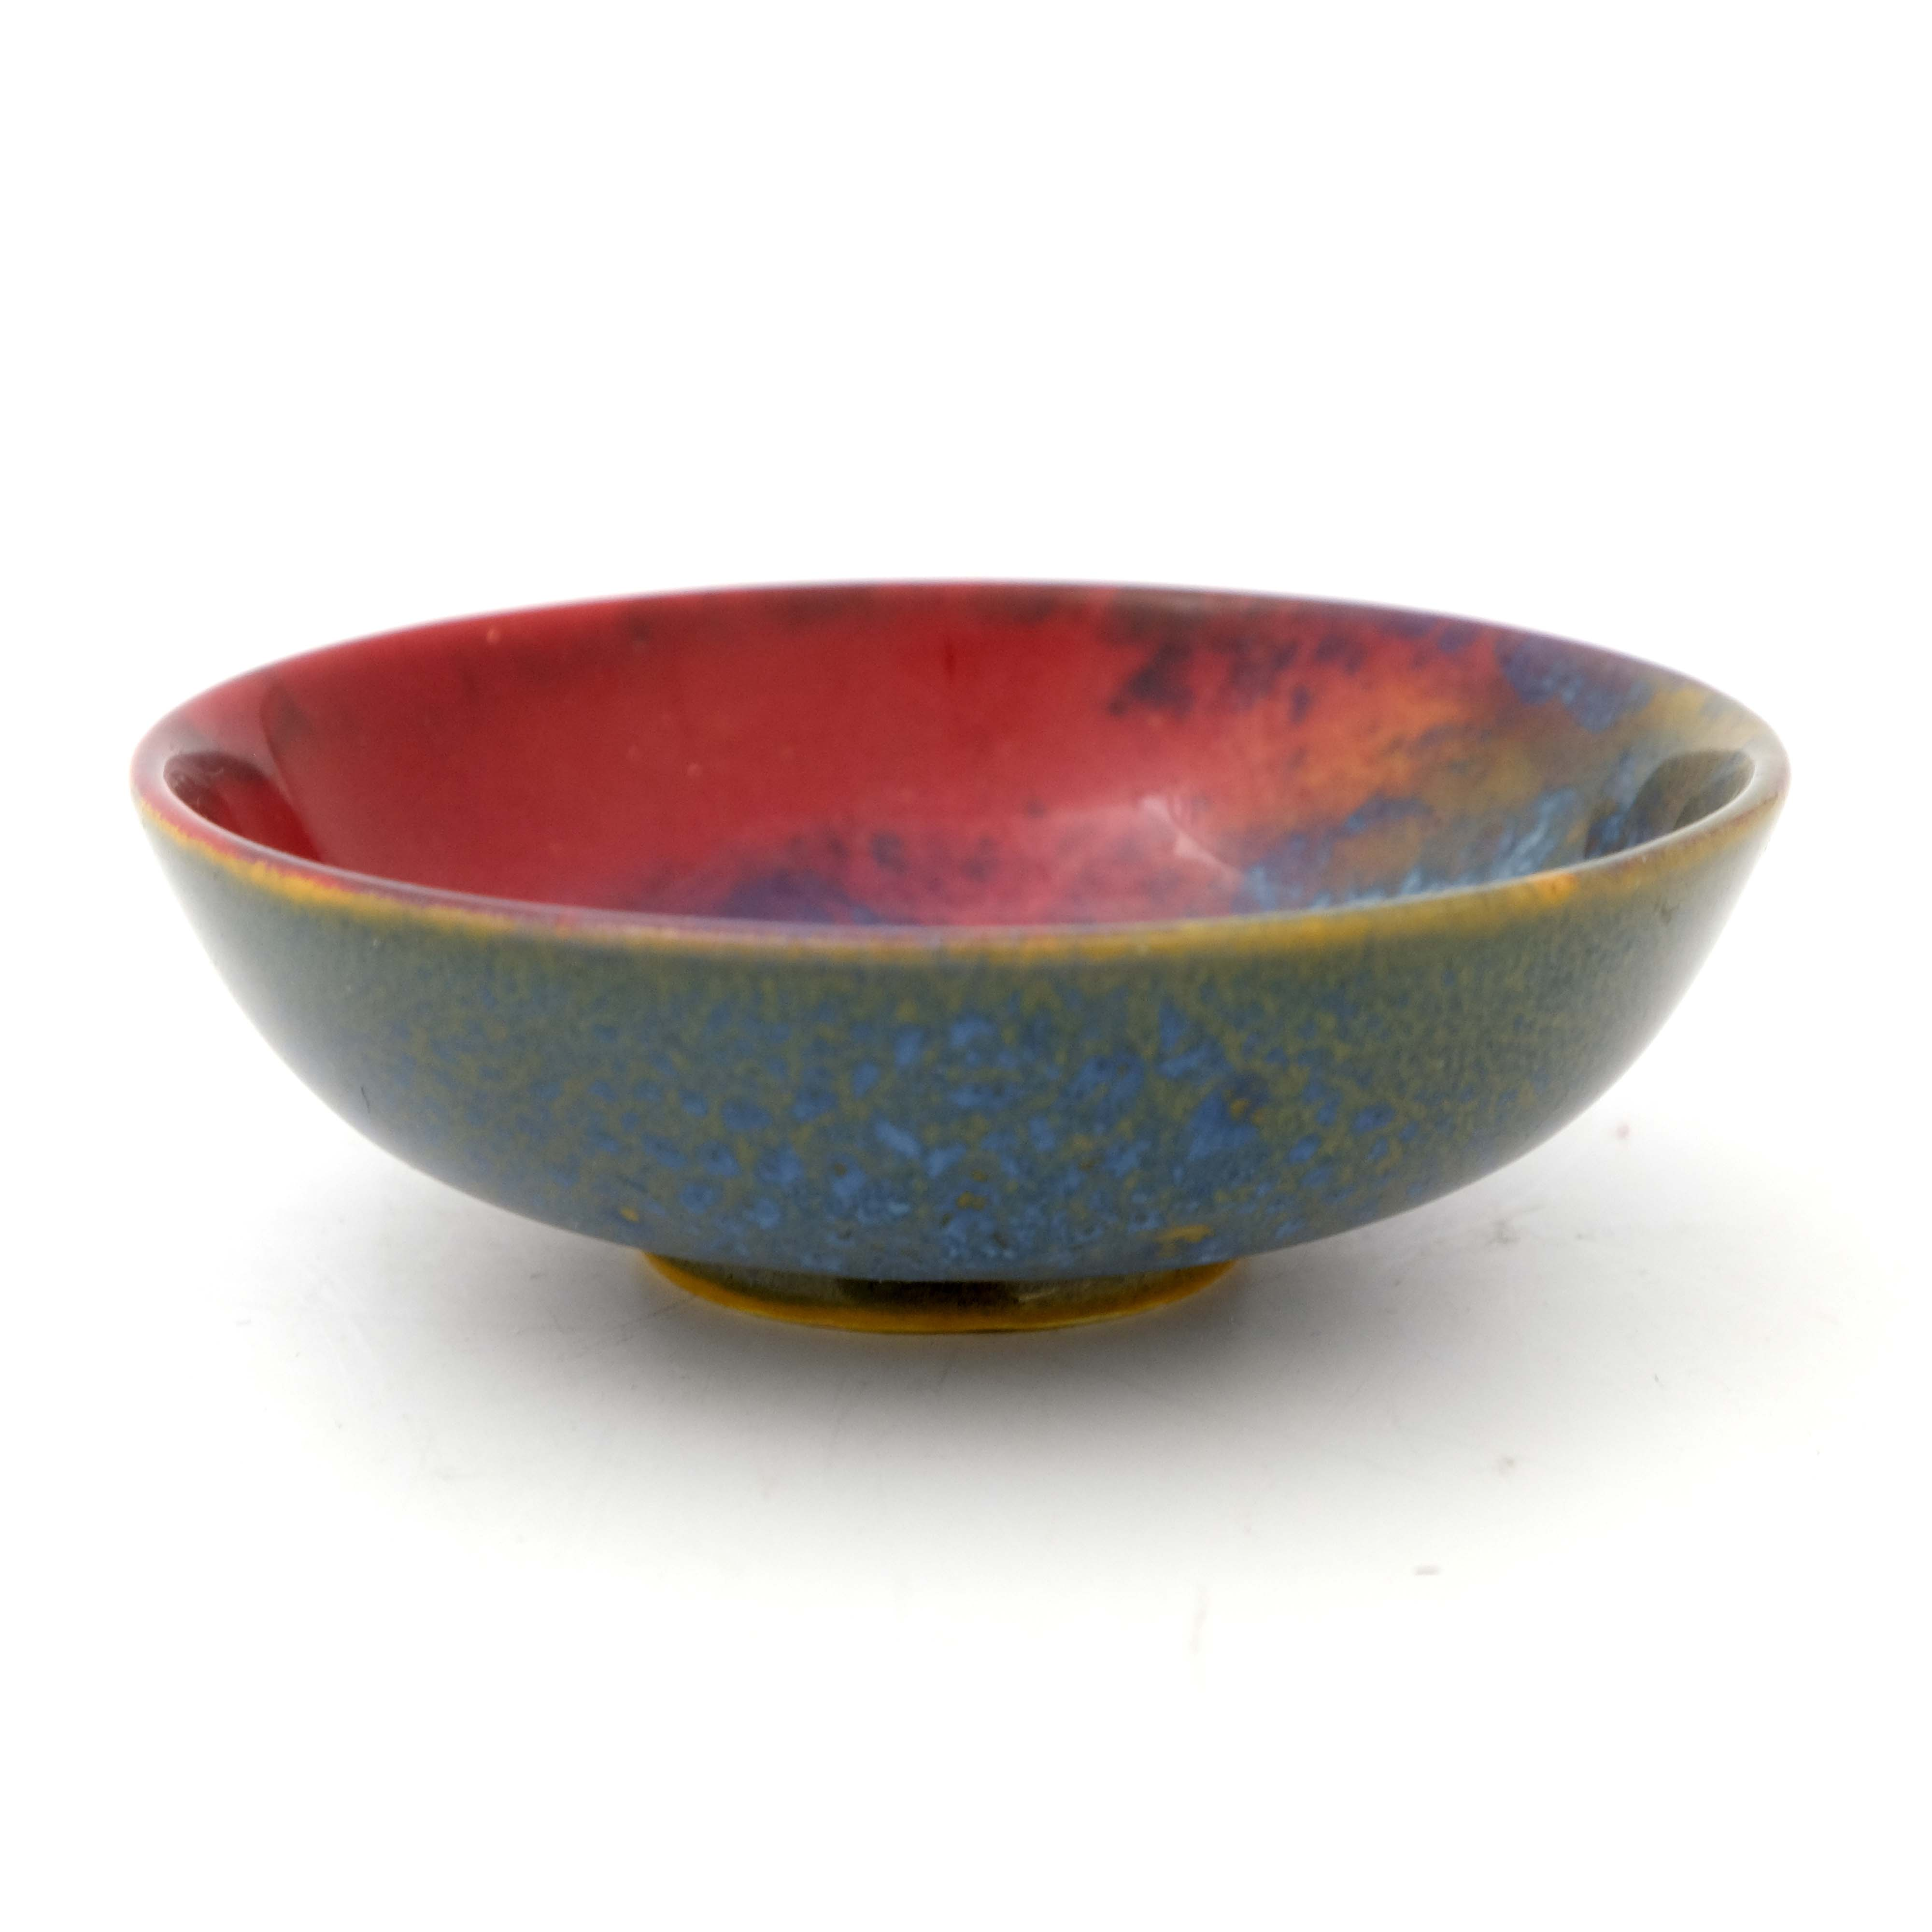 Harry Nixon for Royal Doulton, a Sung Flambe bowl - Image 3 of 5